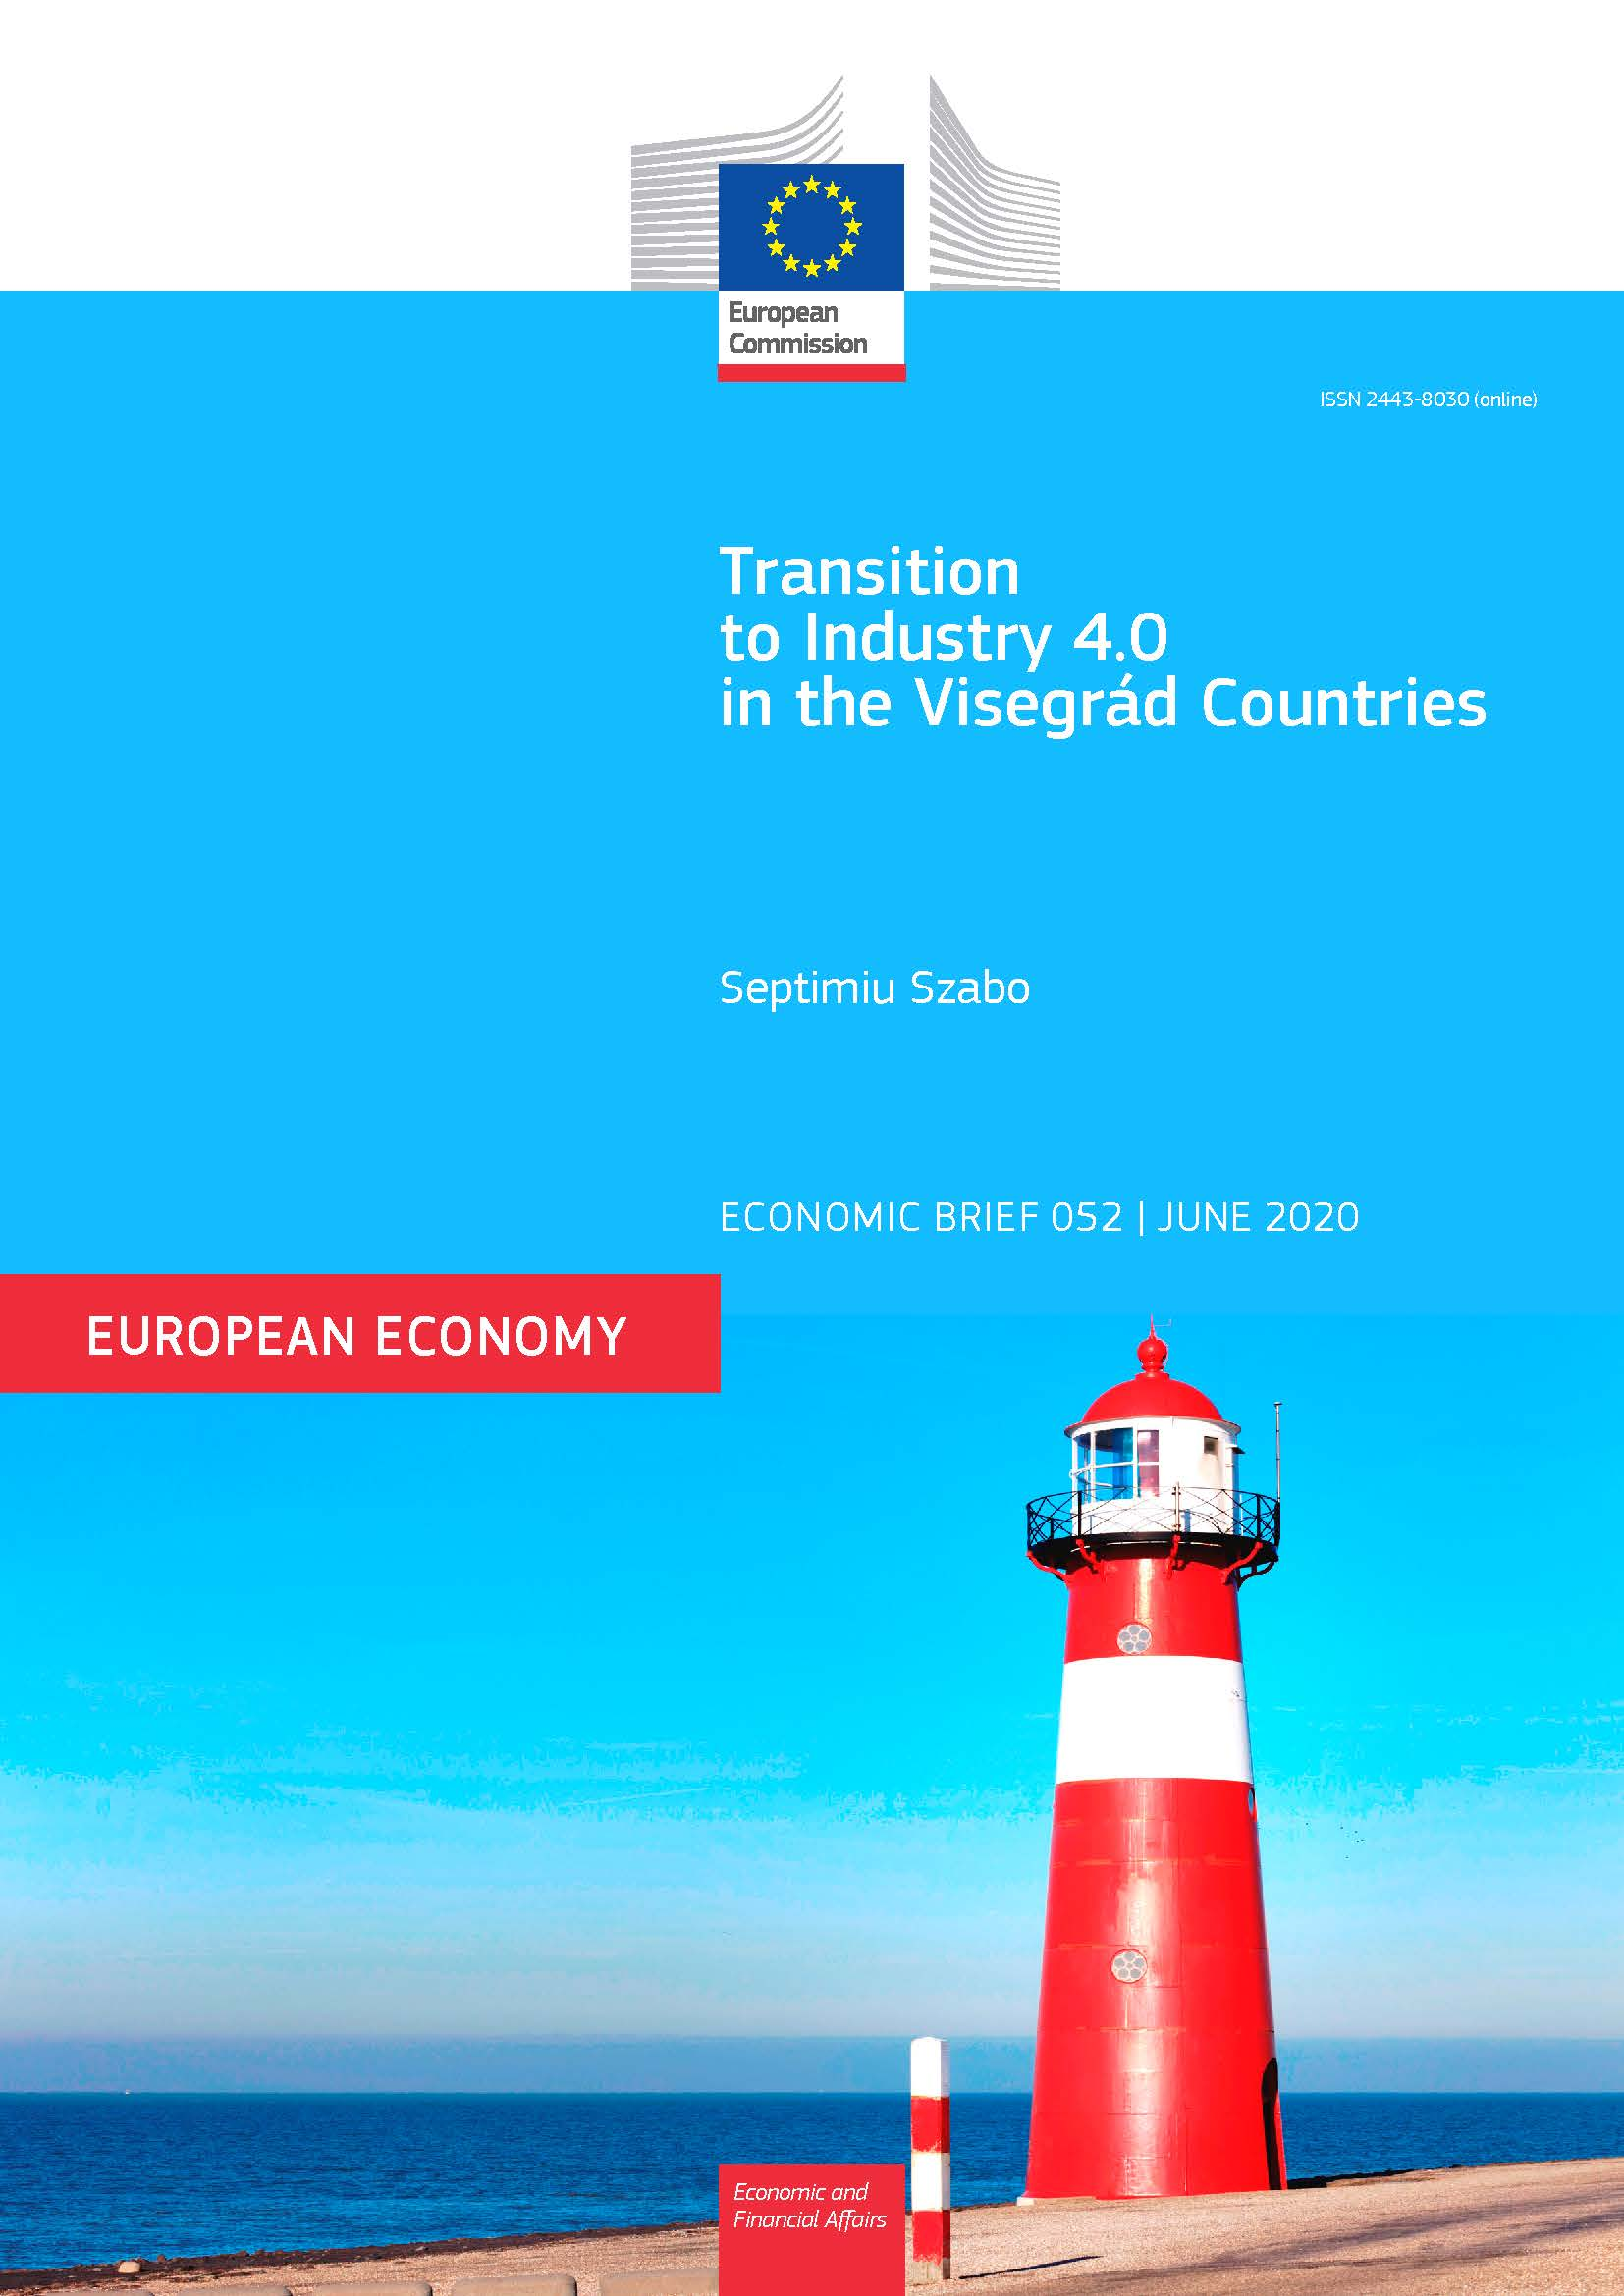 Transition to Industry 4.0 in the Visegrád Countries